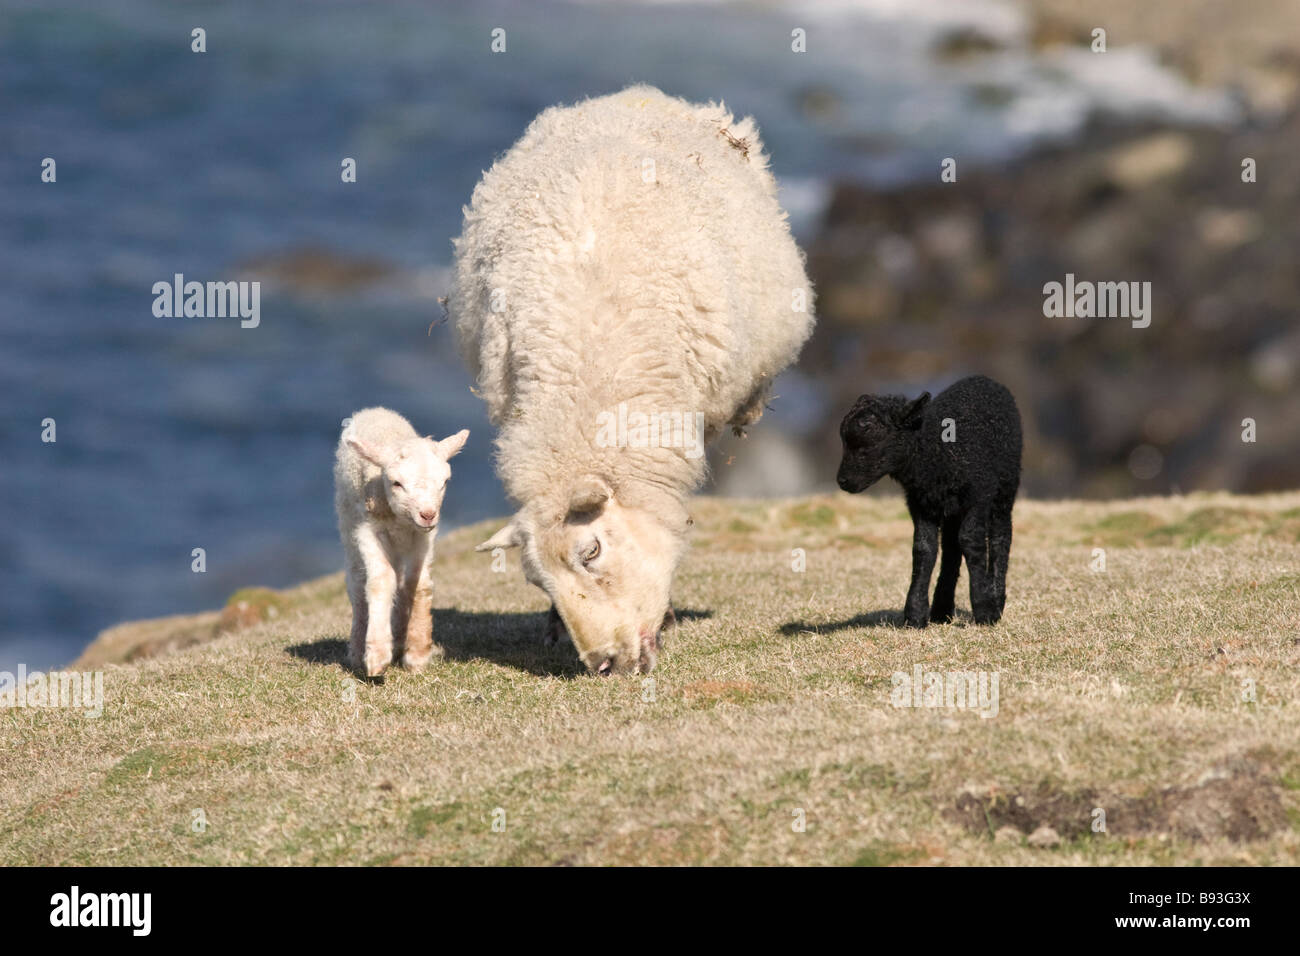 Female sheep or ewe with one black and one white lamb - Stock Image